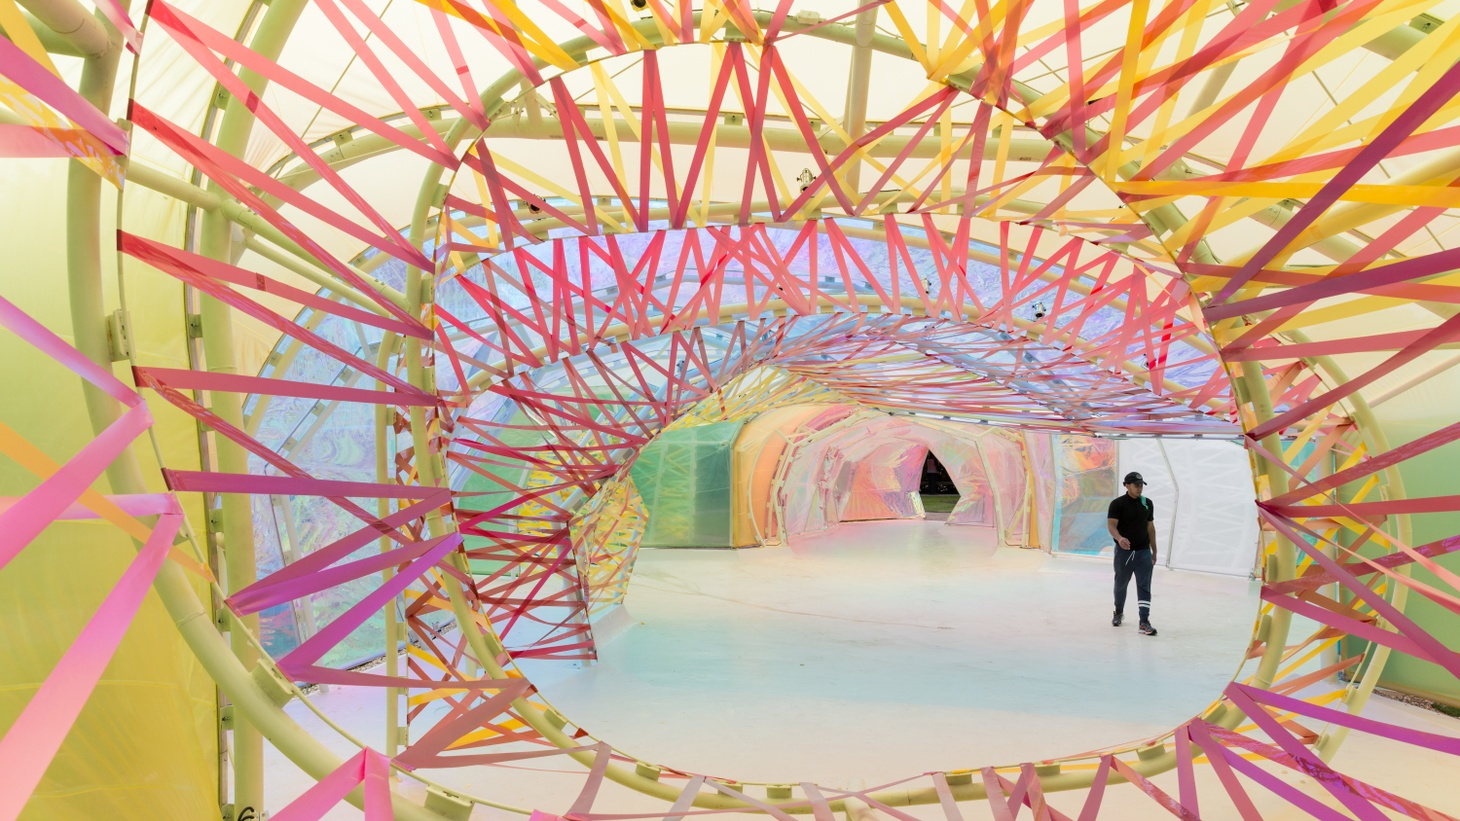 The interior of the Serpentine Pavilion by Selgascano.